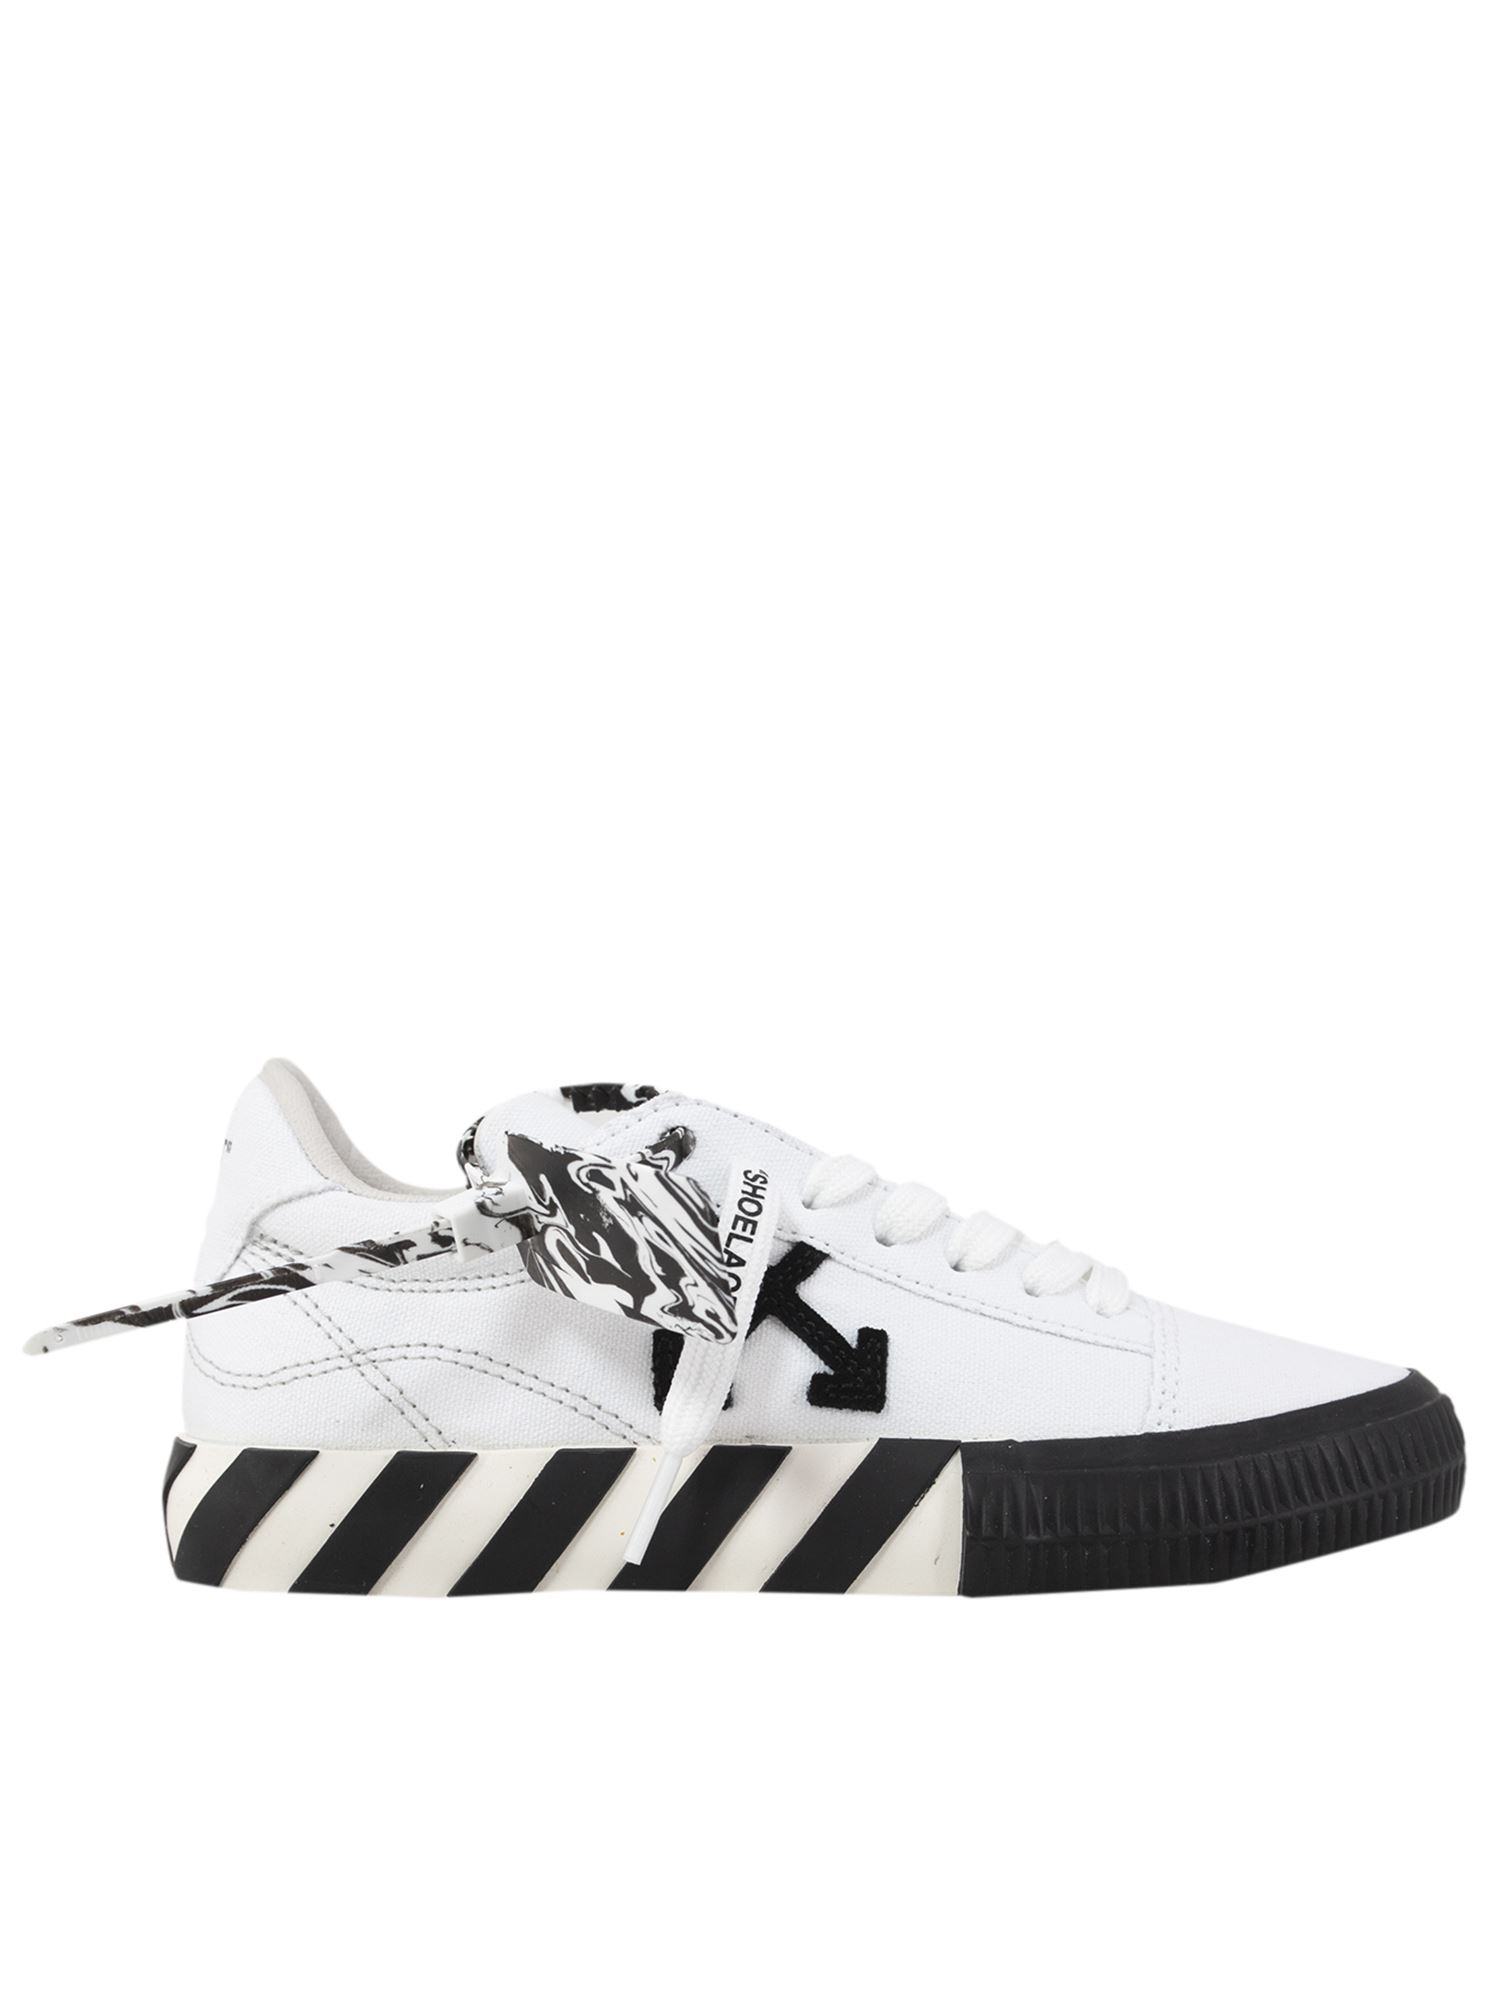 Off-White Low tops VULCANIZED LOW SNEAKERS IN WHITE AND BLACK